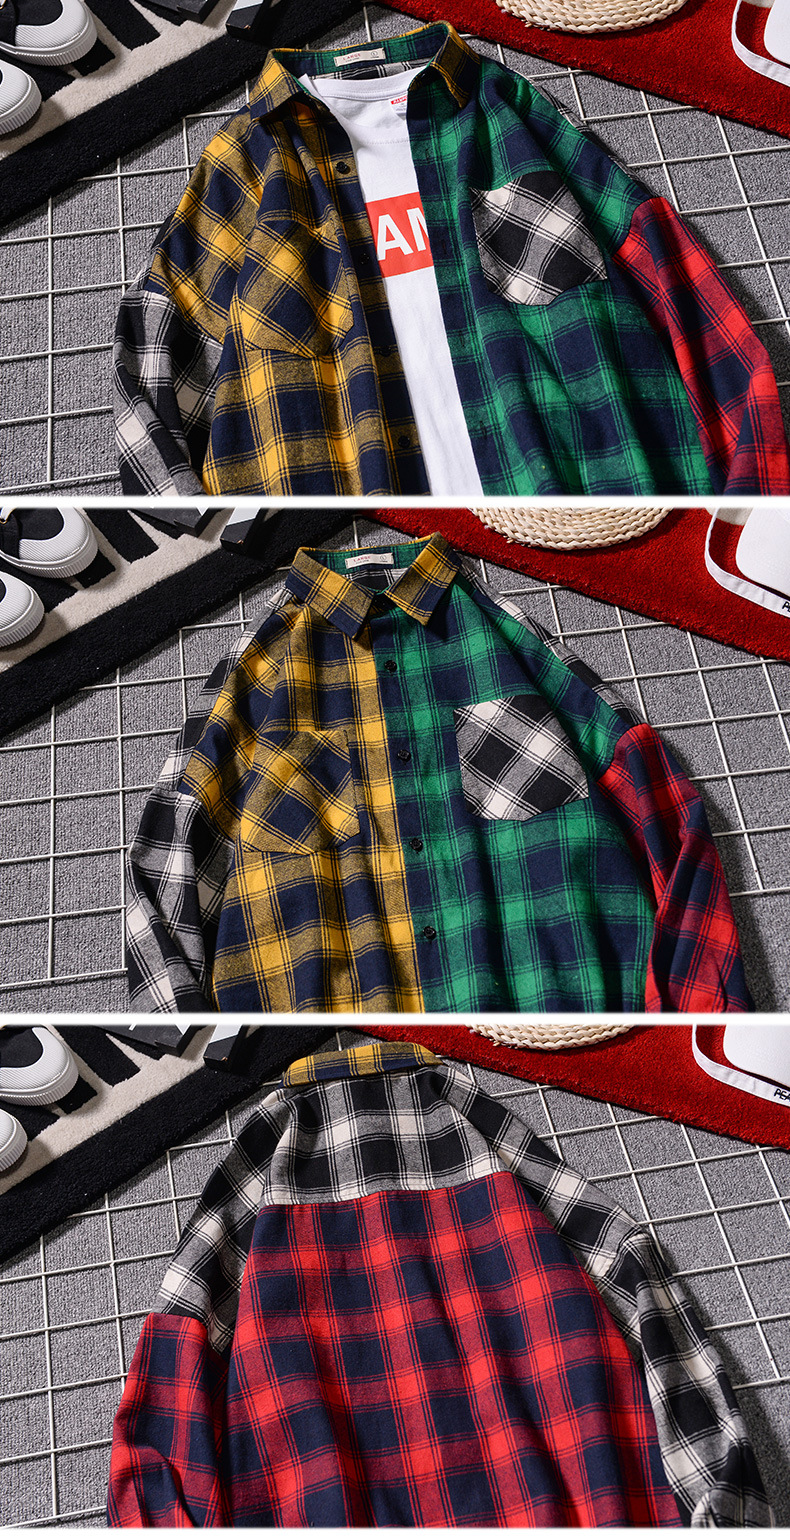 Men 's Loose Plaid Shirt Casual Jacket Student Shirt Plaid Long Sleeve Shirt Spring And Autumn Loose Color Matching Male Shirt 3